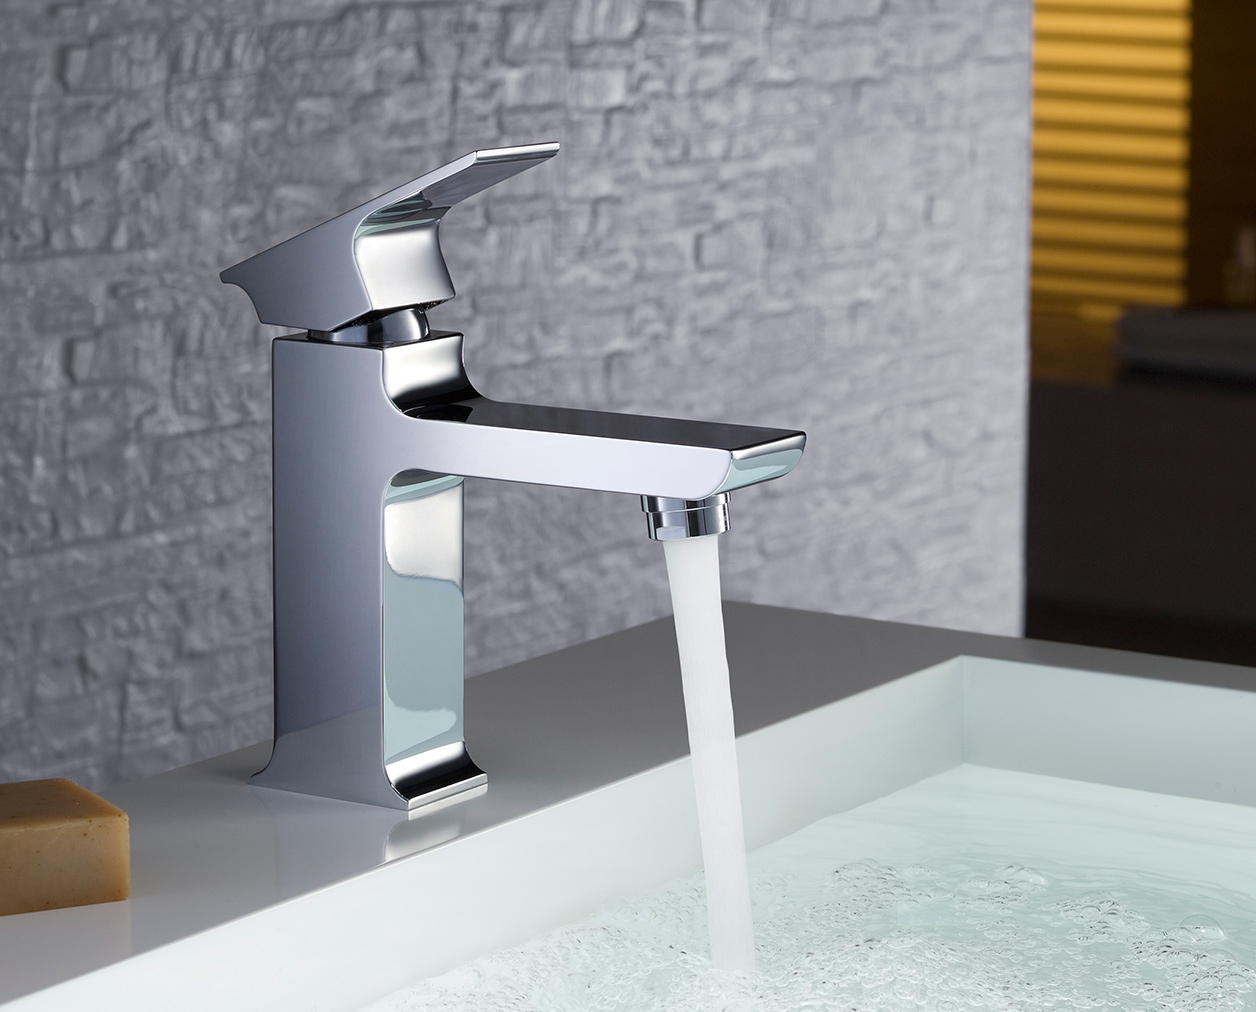 Modern Bathroom Vanities Cabinets Faucets Bathroom Place Miami - Bathroom vanities delray beach fl